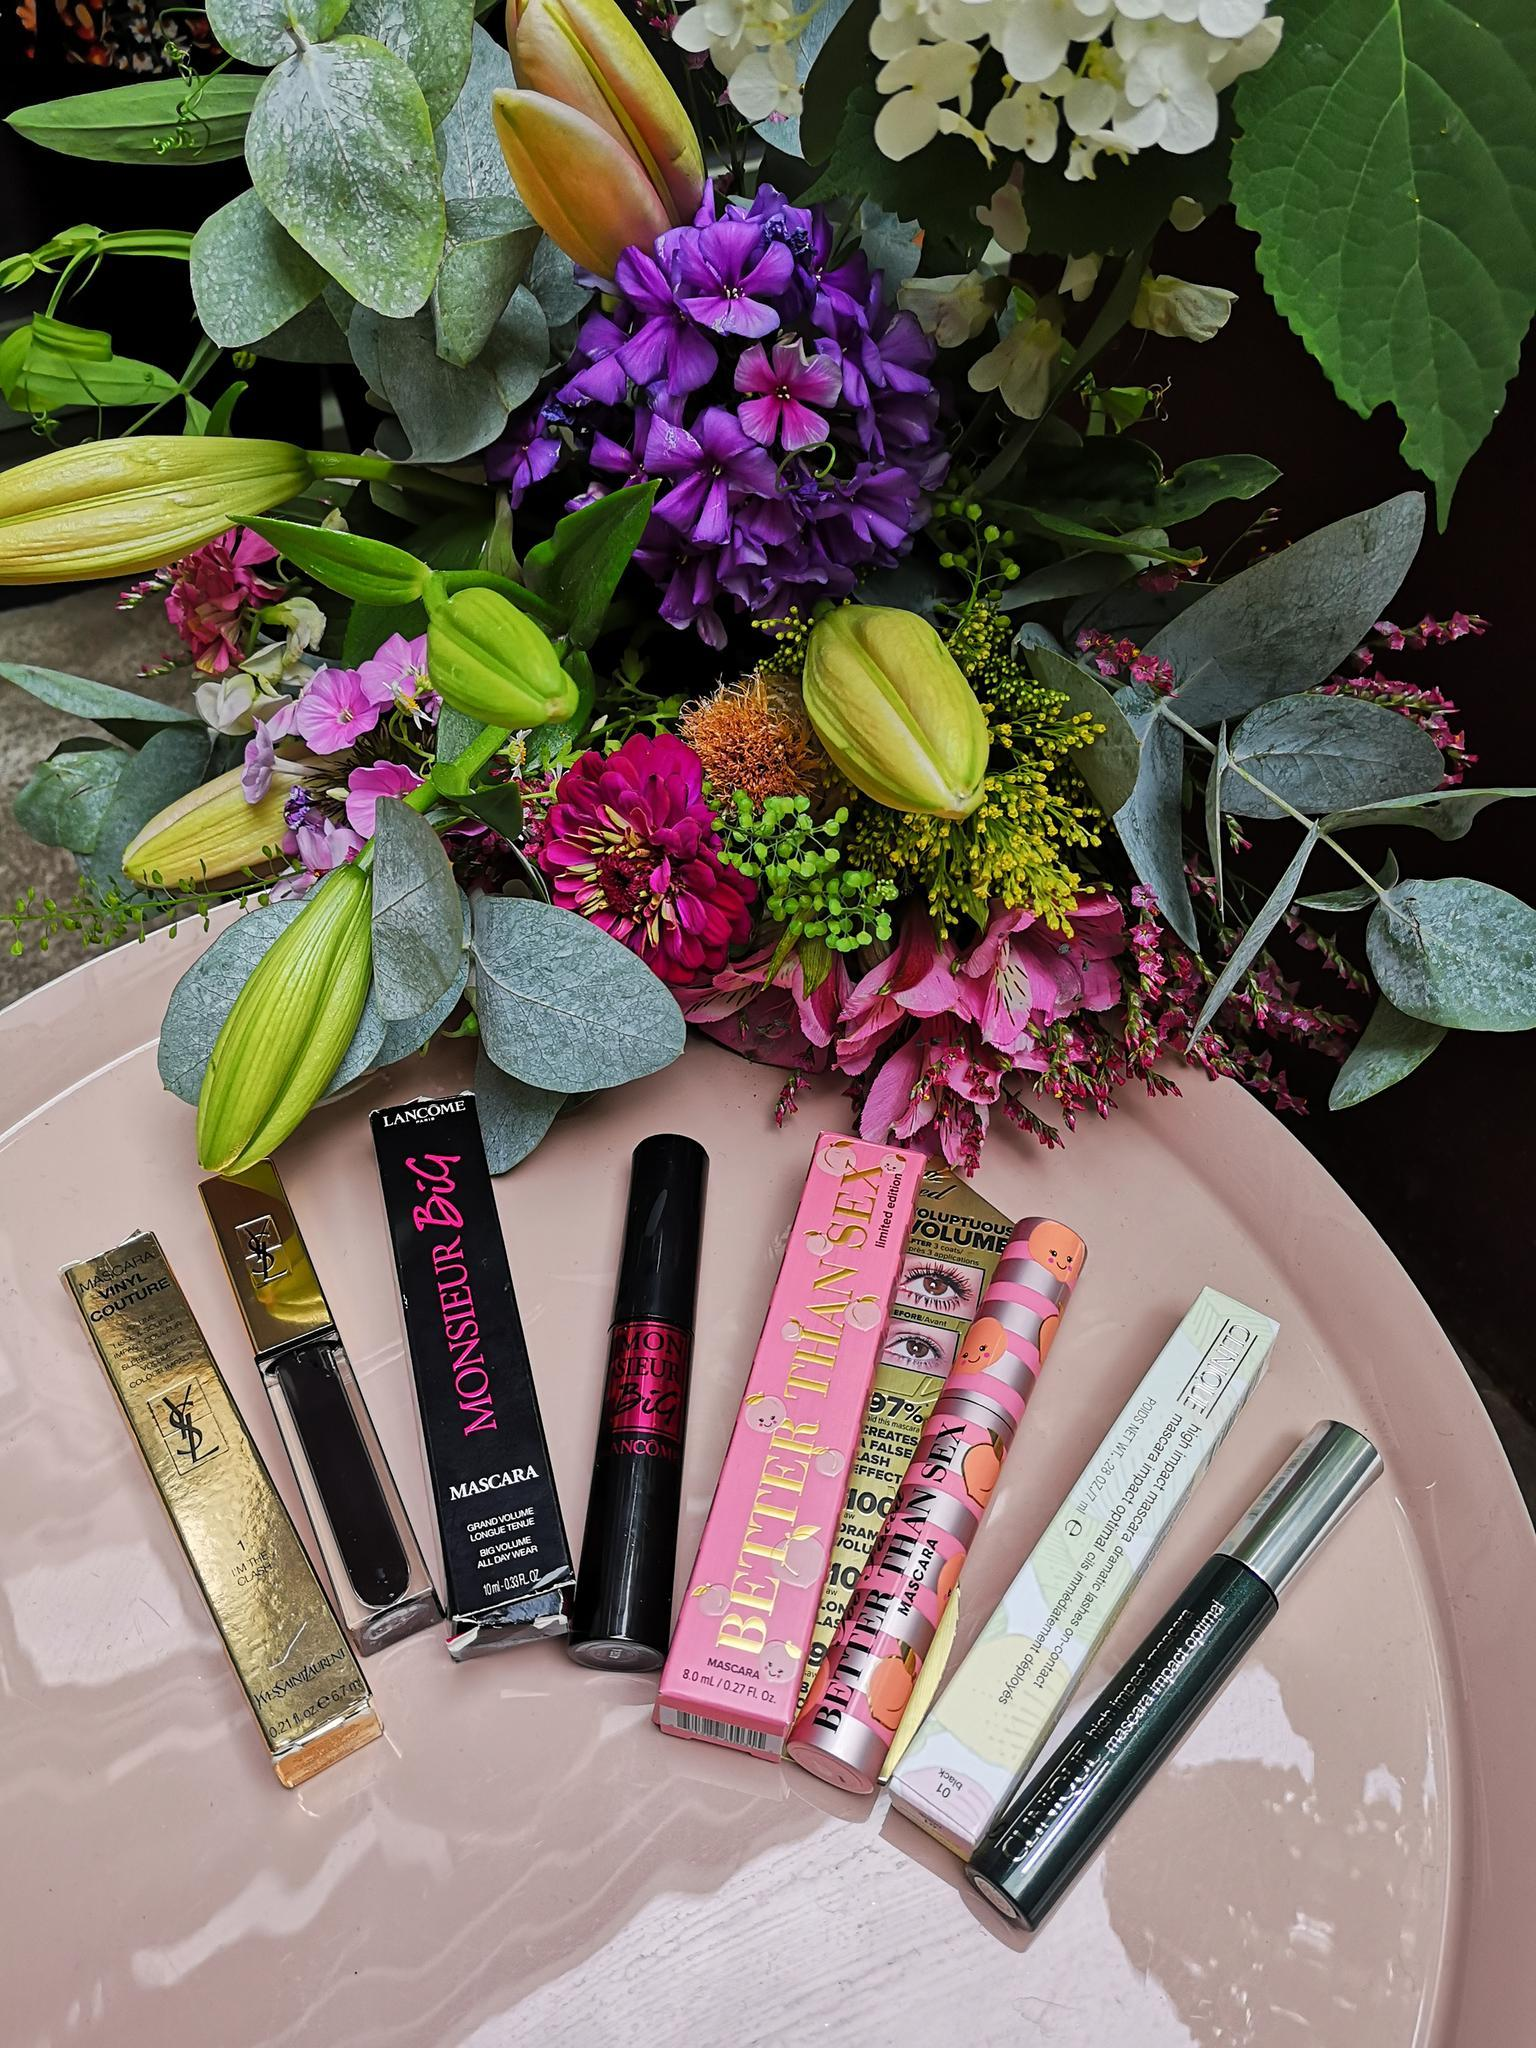 Mascara-Test, Yves Saint Laurent, Lancôme, Too Faced, Clinique, alle Produkte, Tische, Blumen